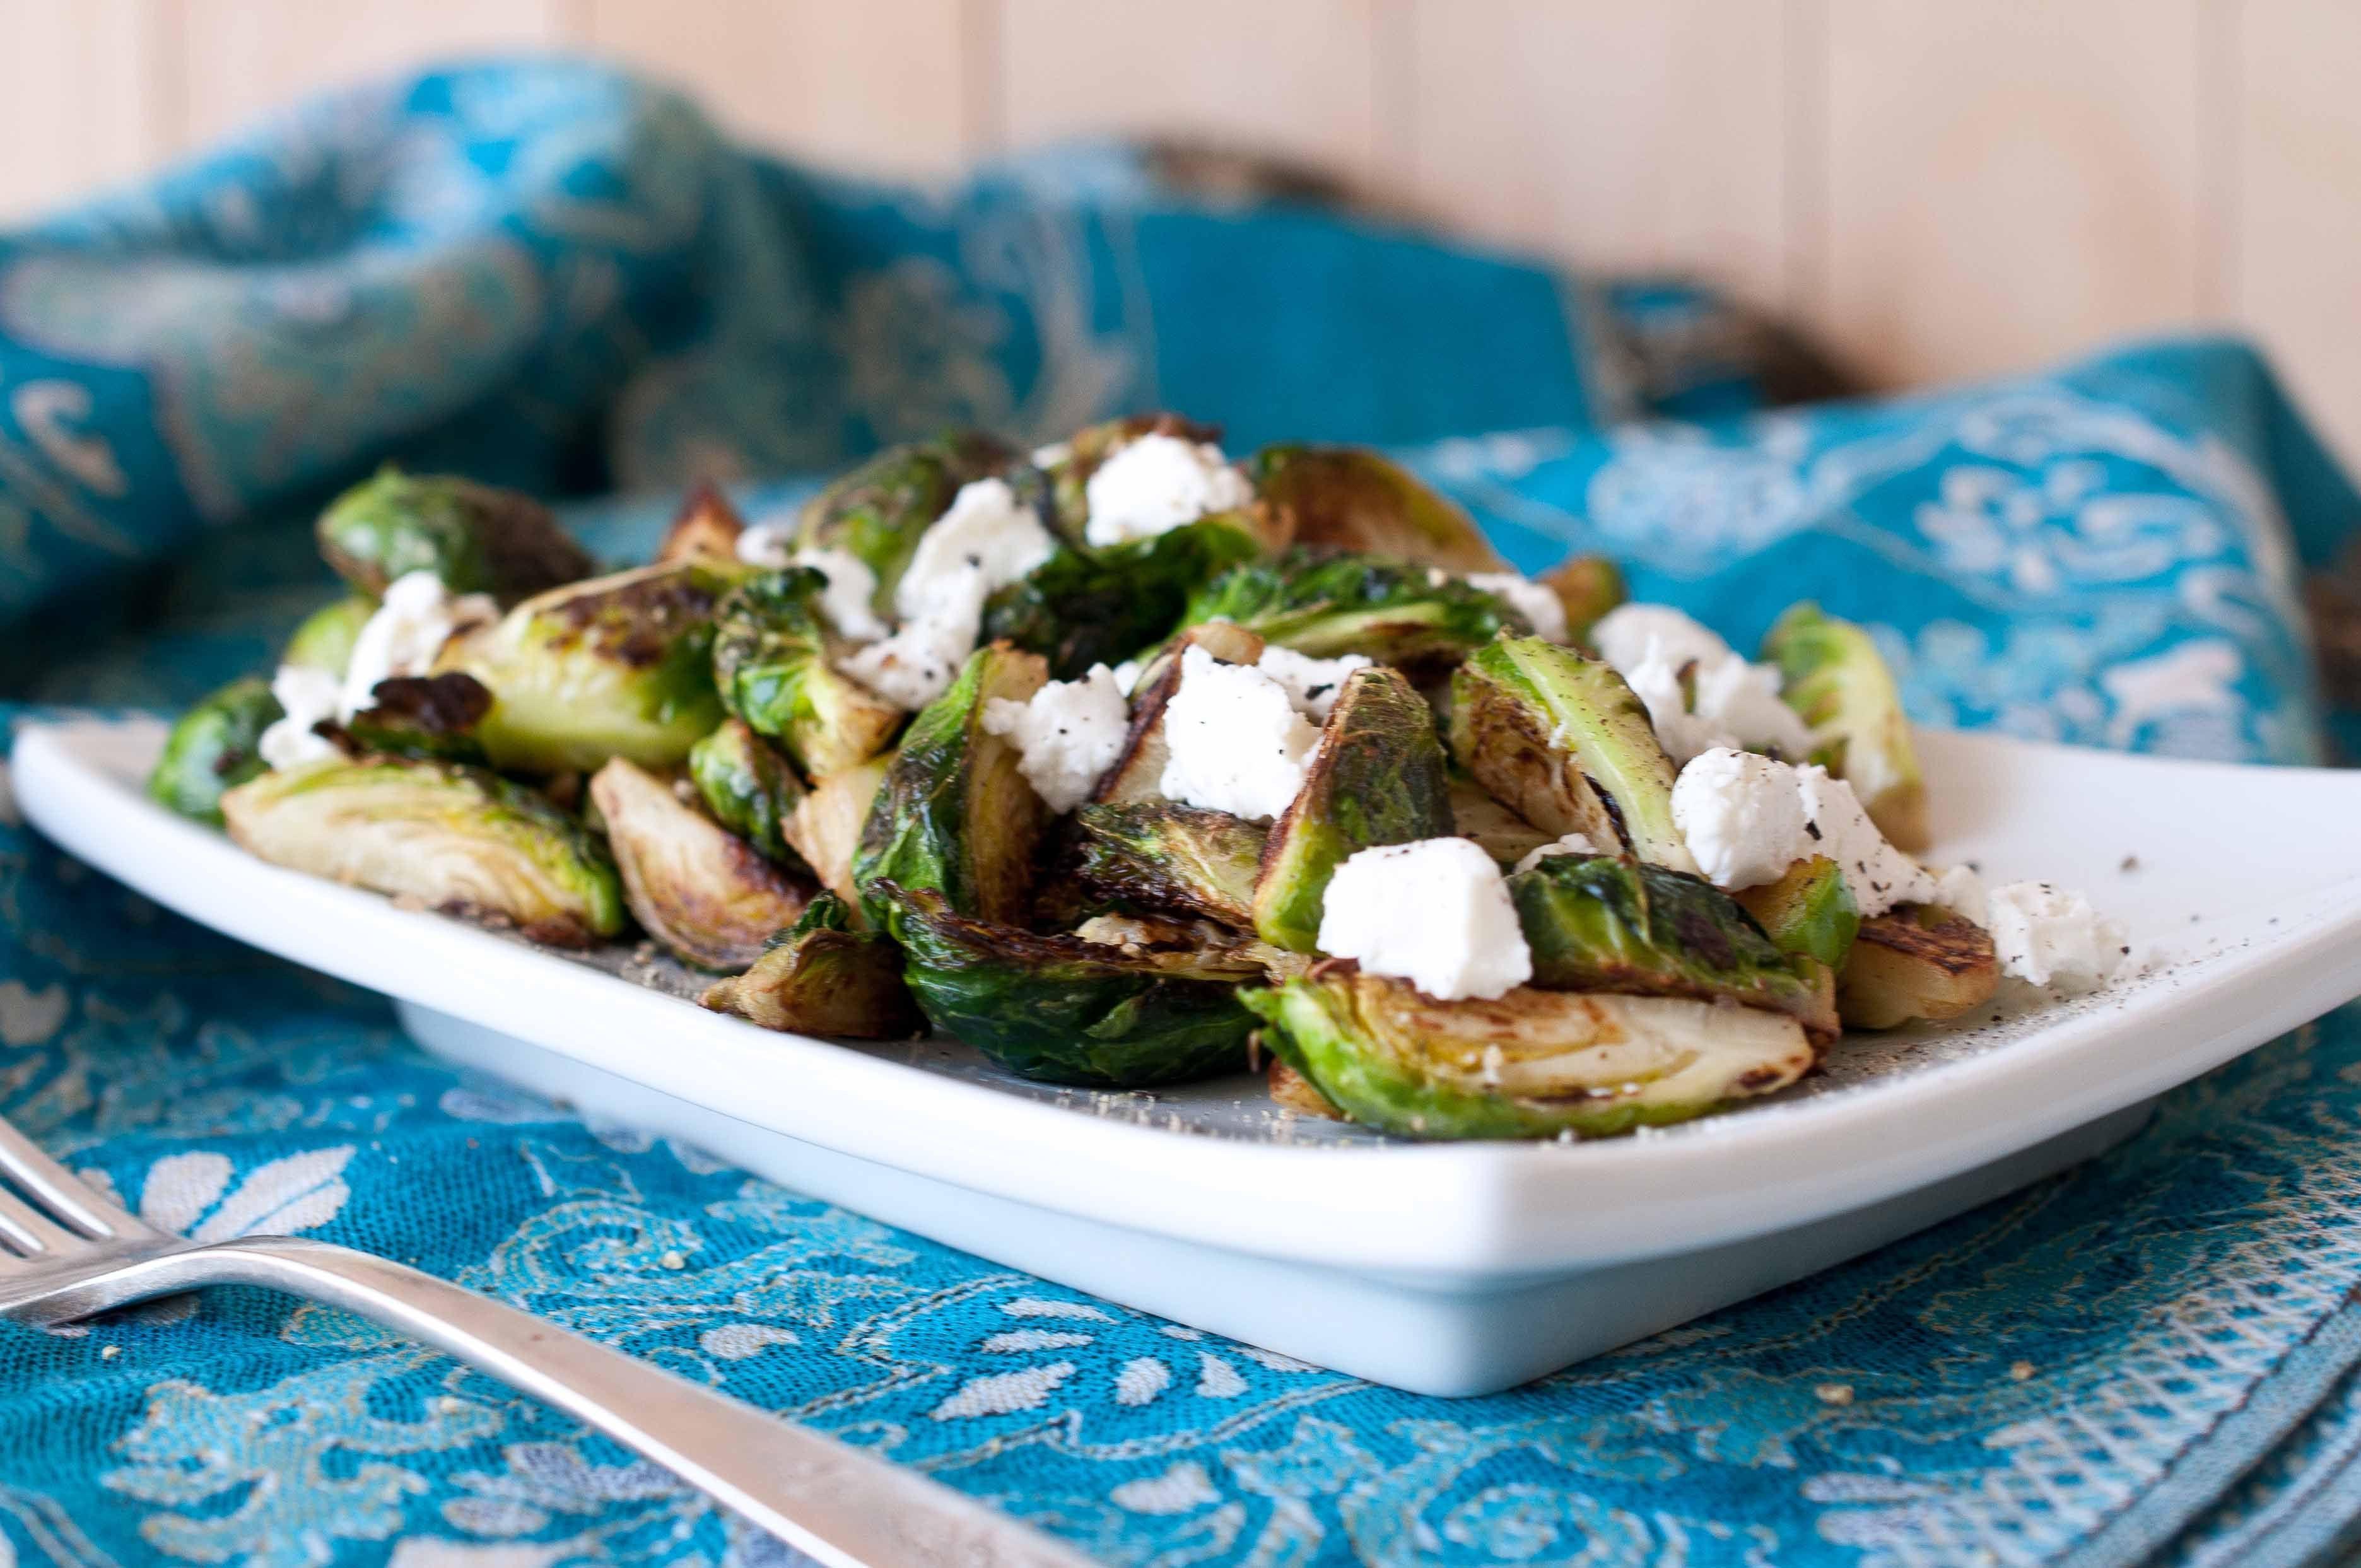 Sauteed Brussels Sprouts With Goat Cheese / Coles de Bruselas con queso de cabra